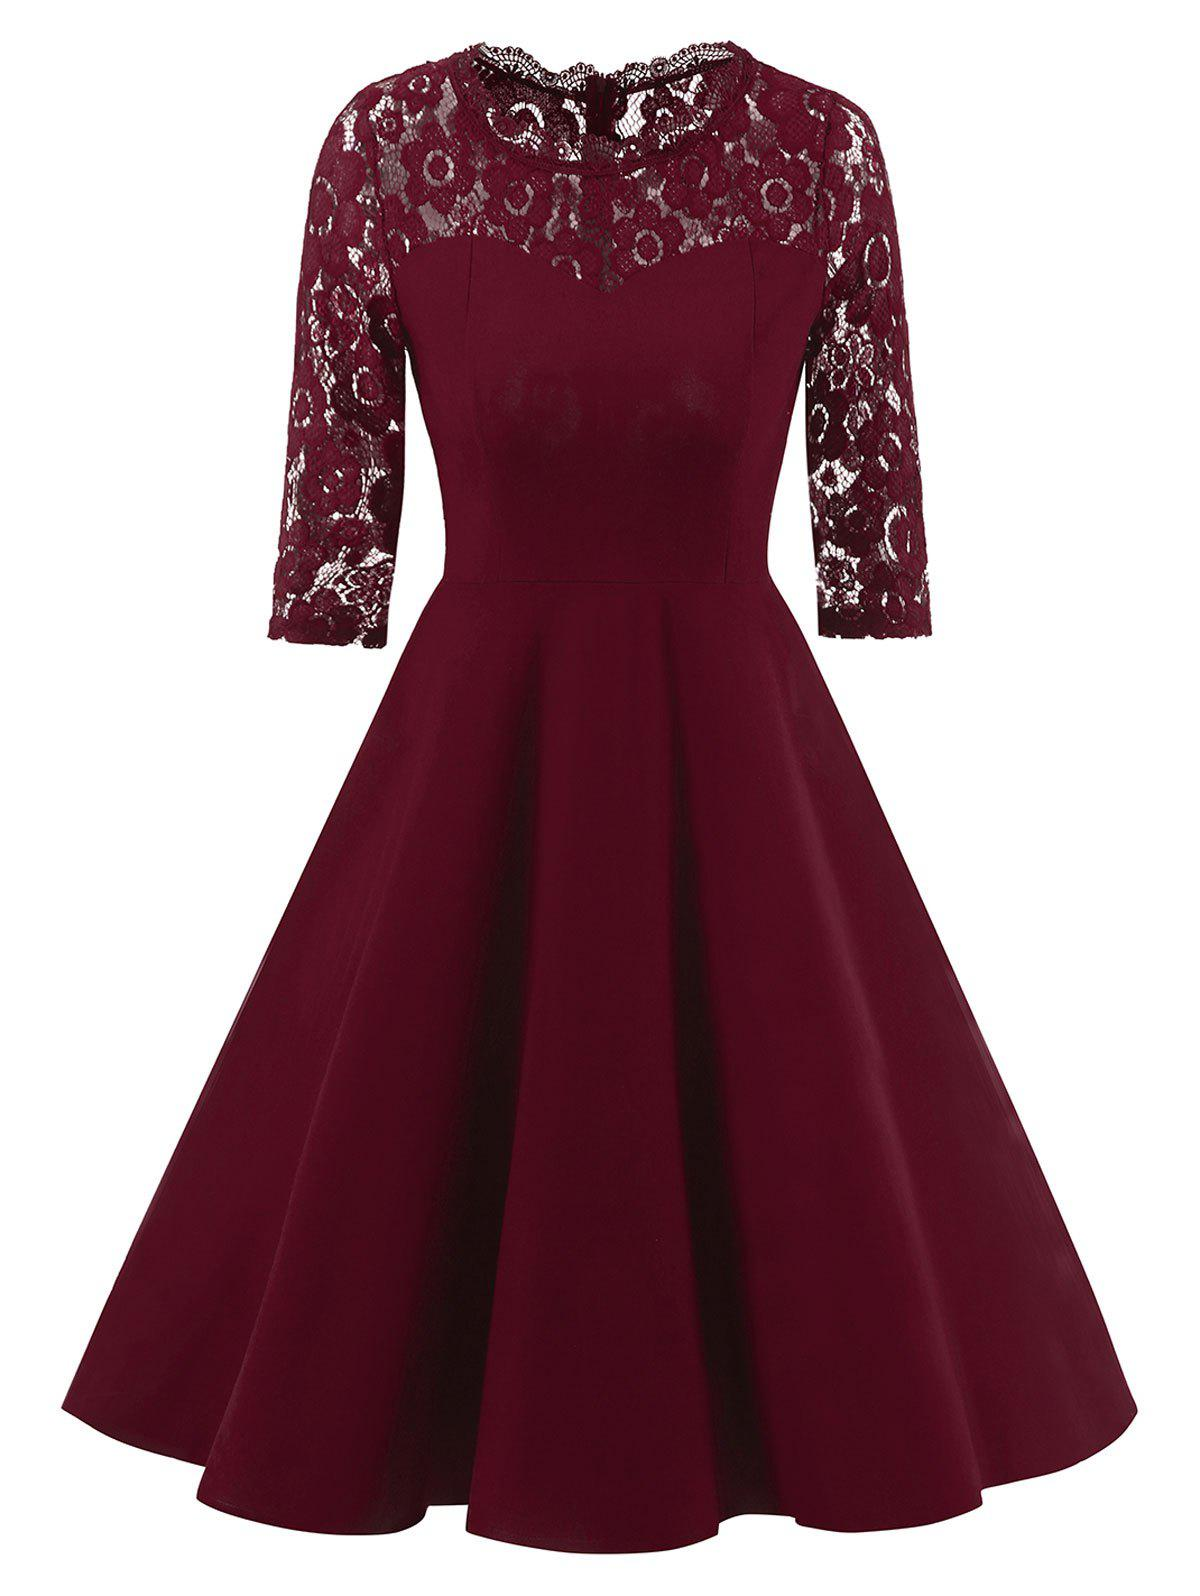 Formal Lace Trim A Line Vintage Dress - WINE RED M